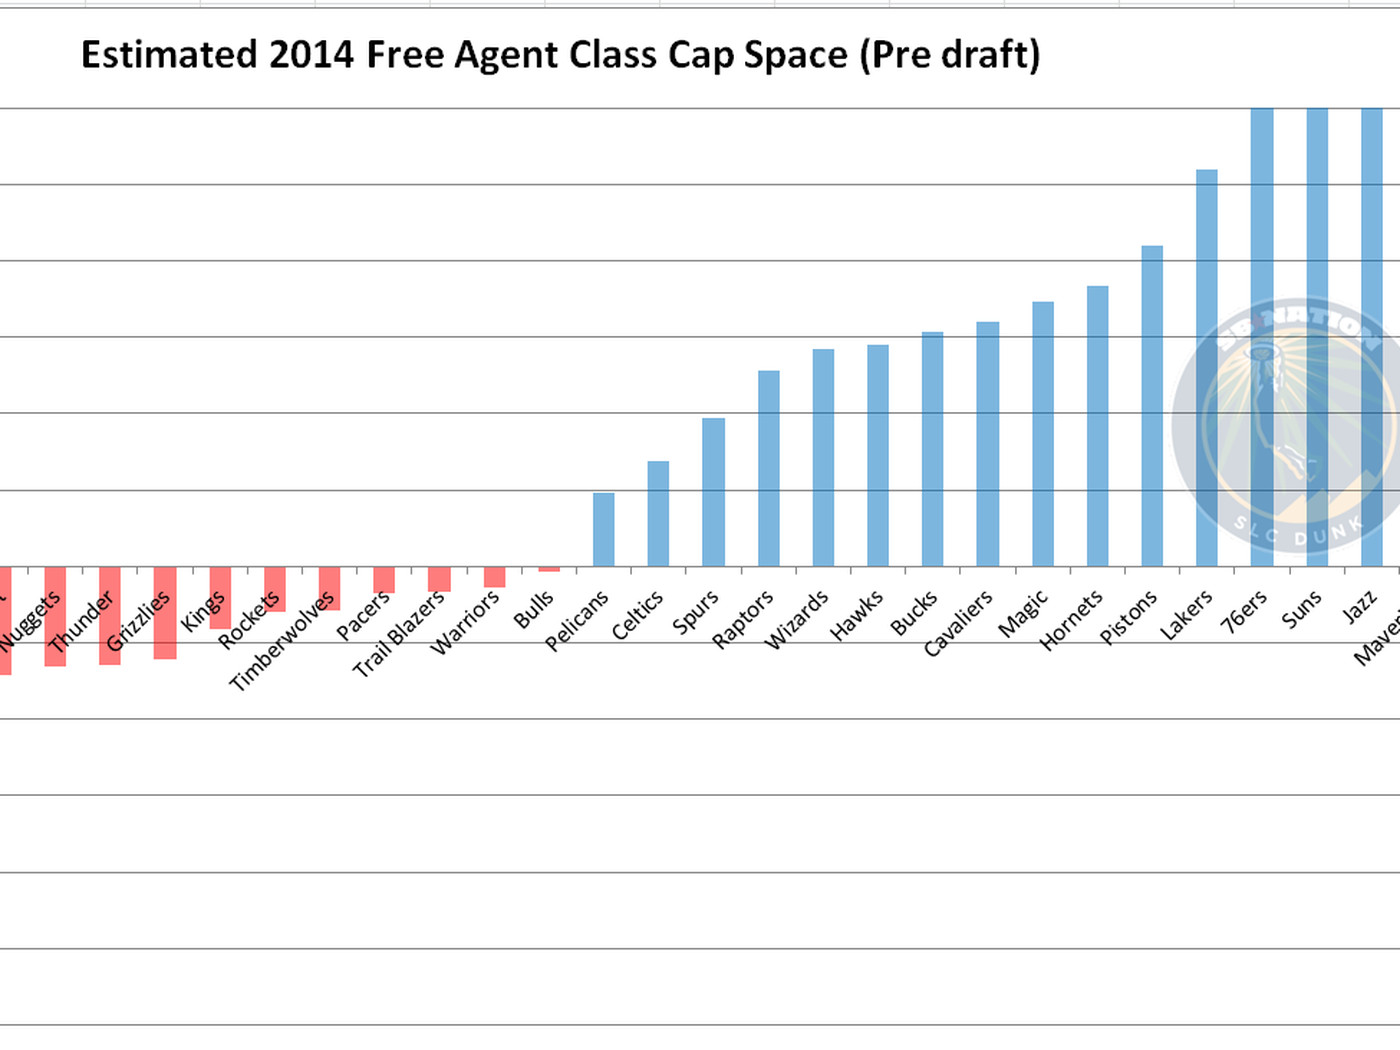 Nba Free Agency 2014 Estimated Cap Space For All 30 Teams Before